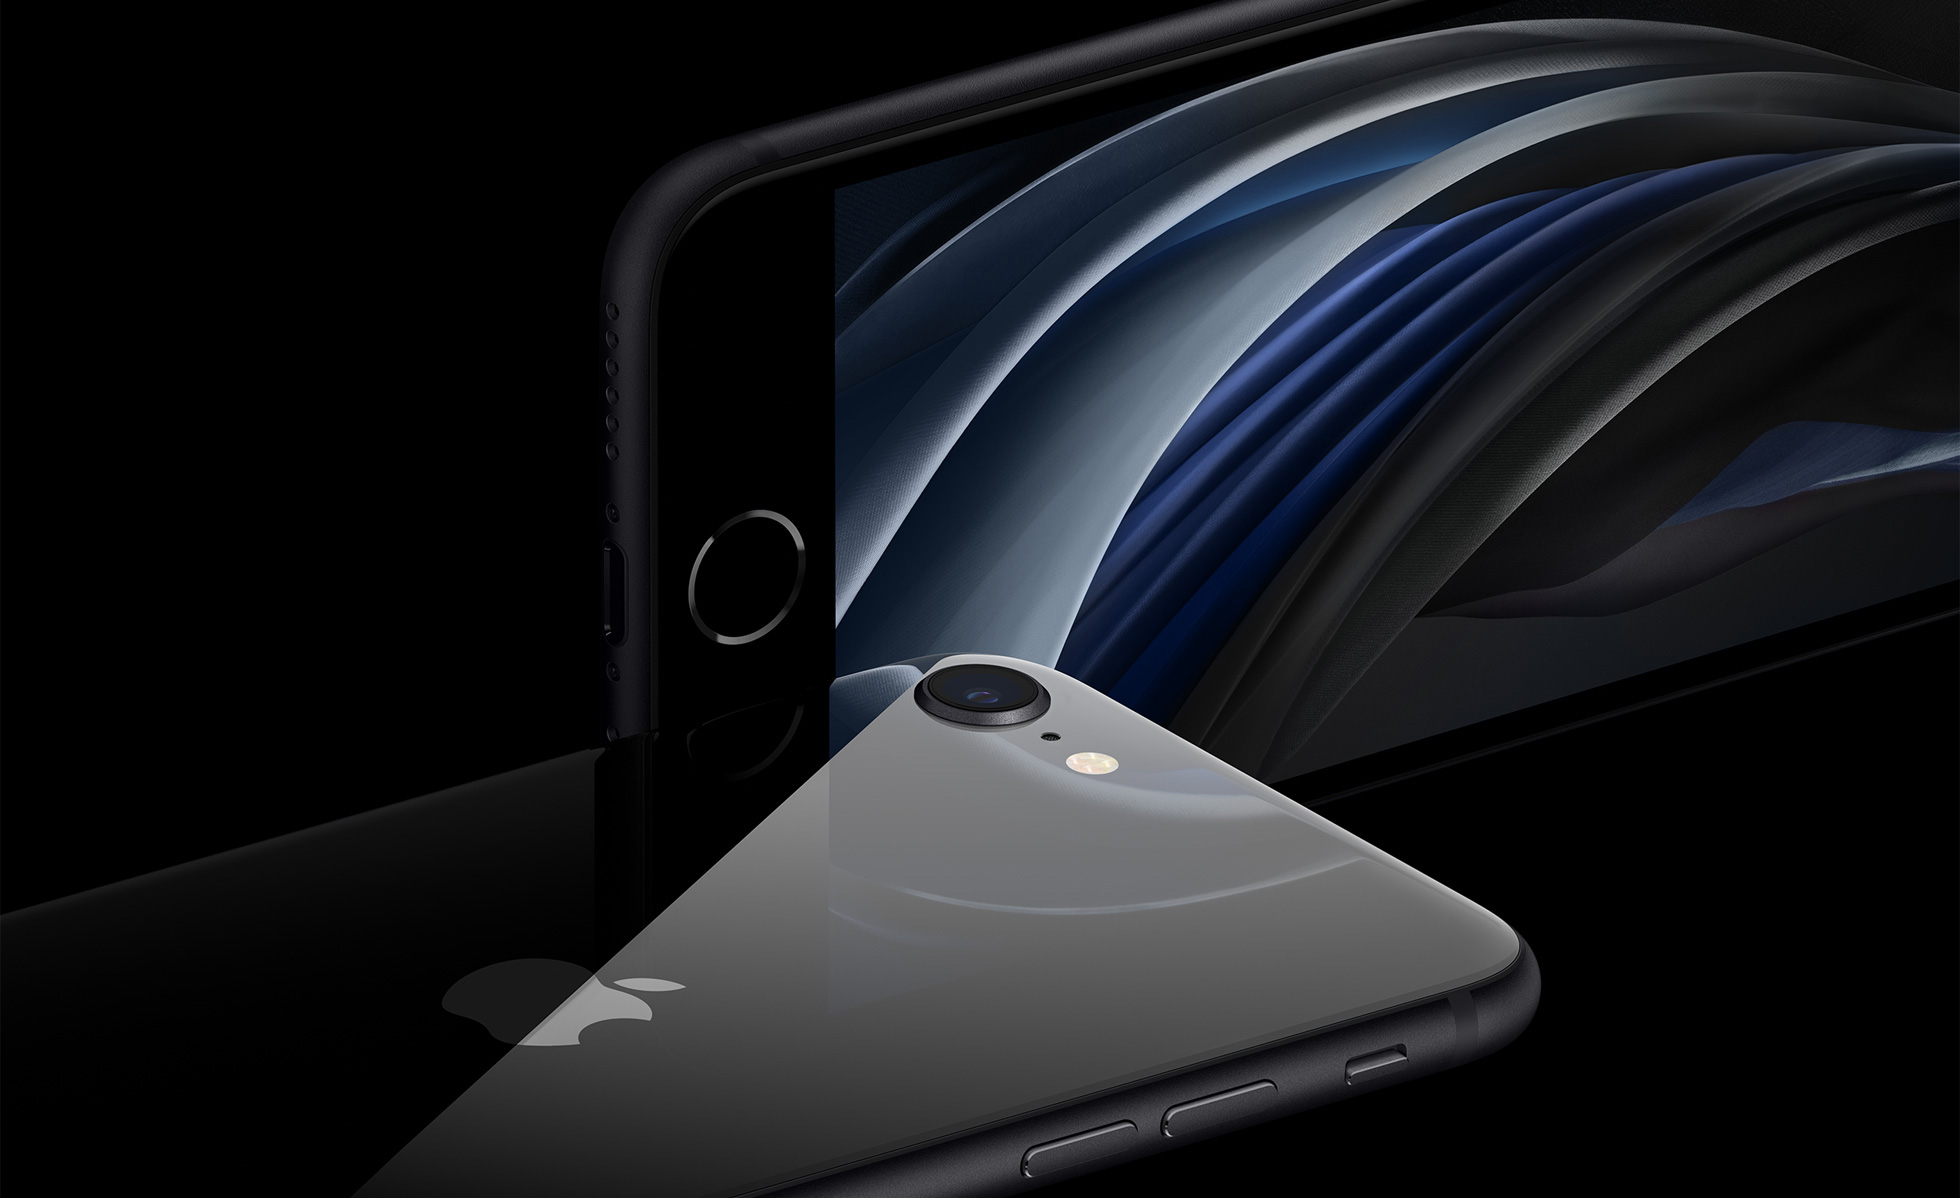 Apple_new-iphone-se-black-camera-and-touch-id_04152020_big.jpg.large_2x